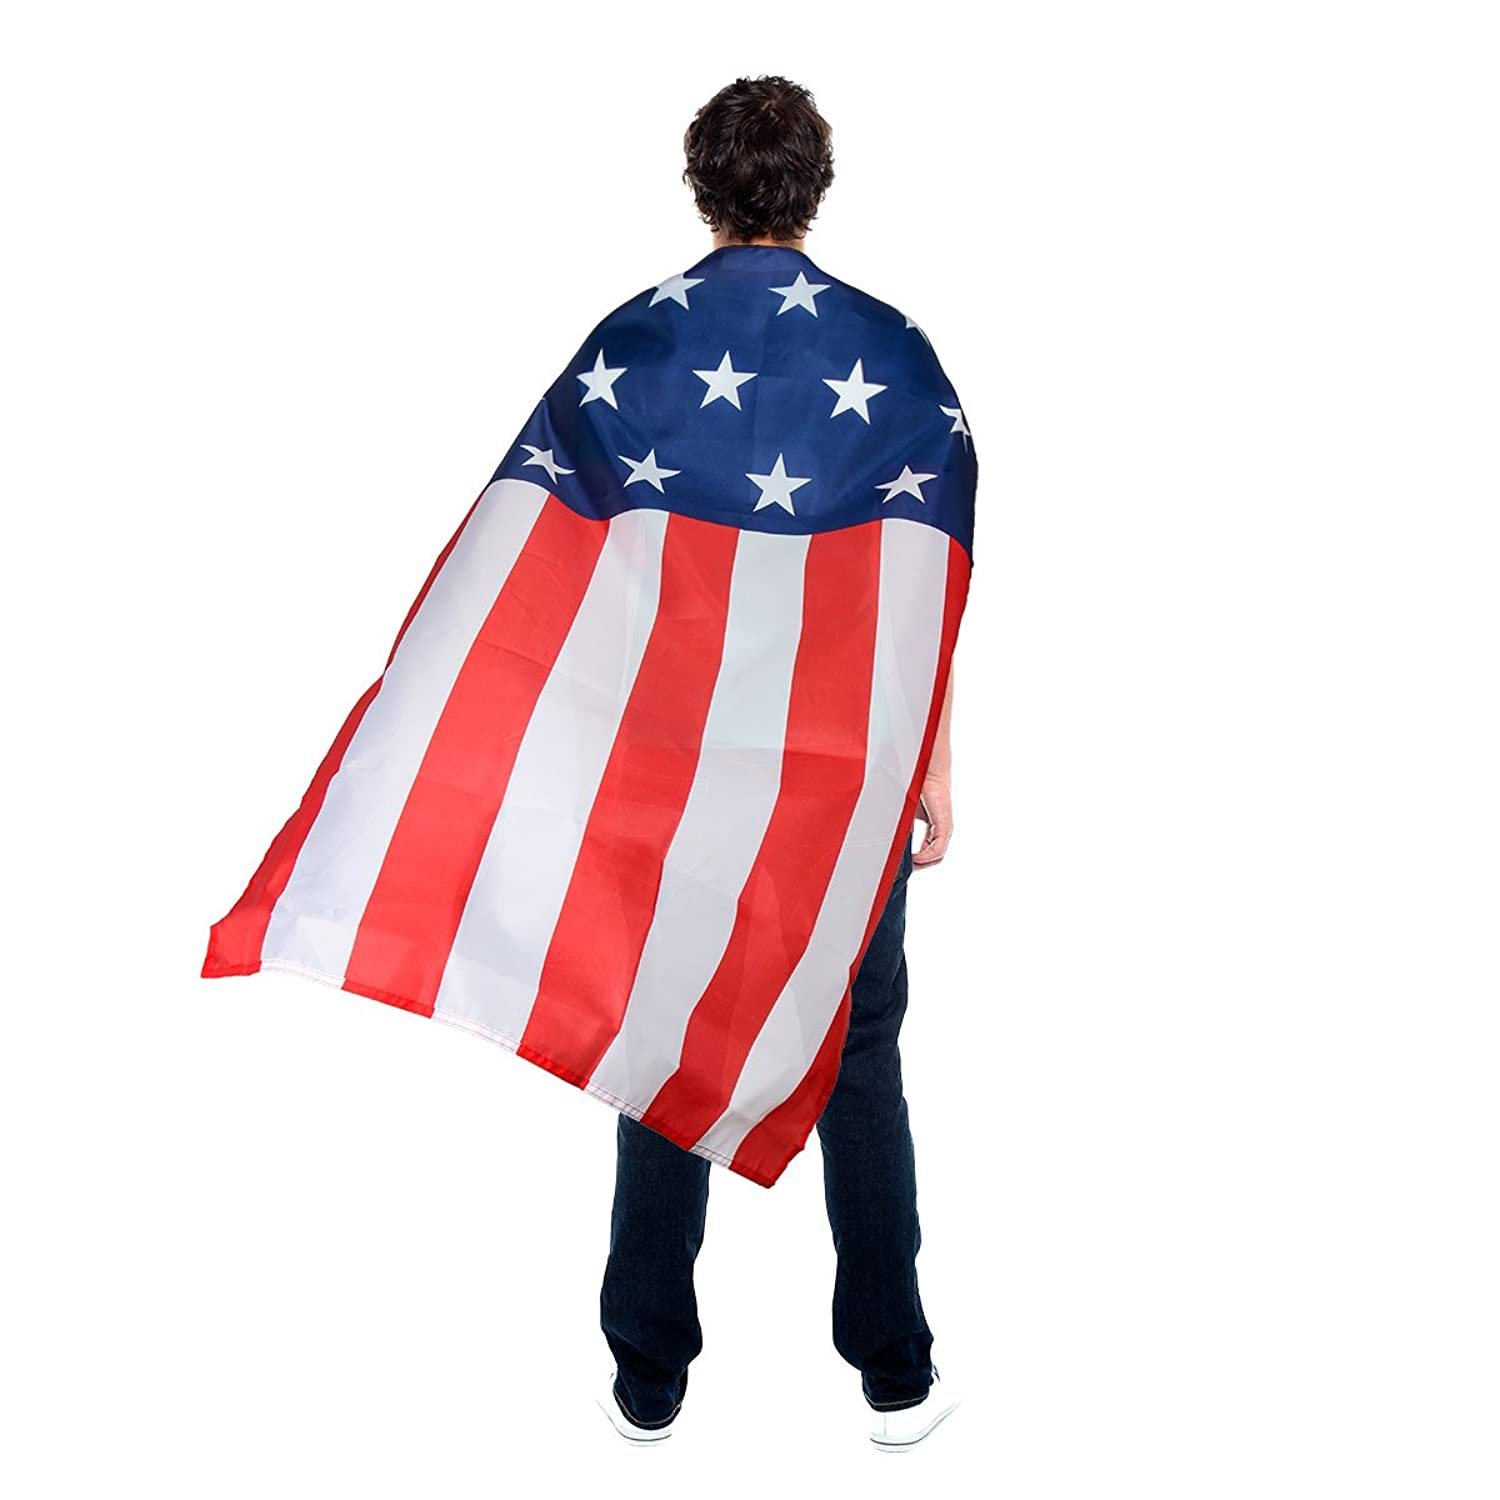 481ccba80 Secure Velcro Clasp, 100% Polyester US American Flag Cape Costume Unique Red,  White, and Blue Star and Stripe Flag pattern with 13 Stars and 9 Stripes